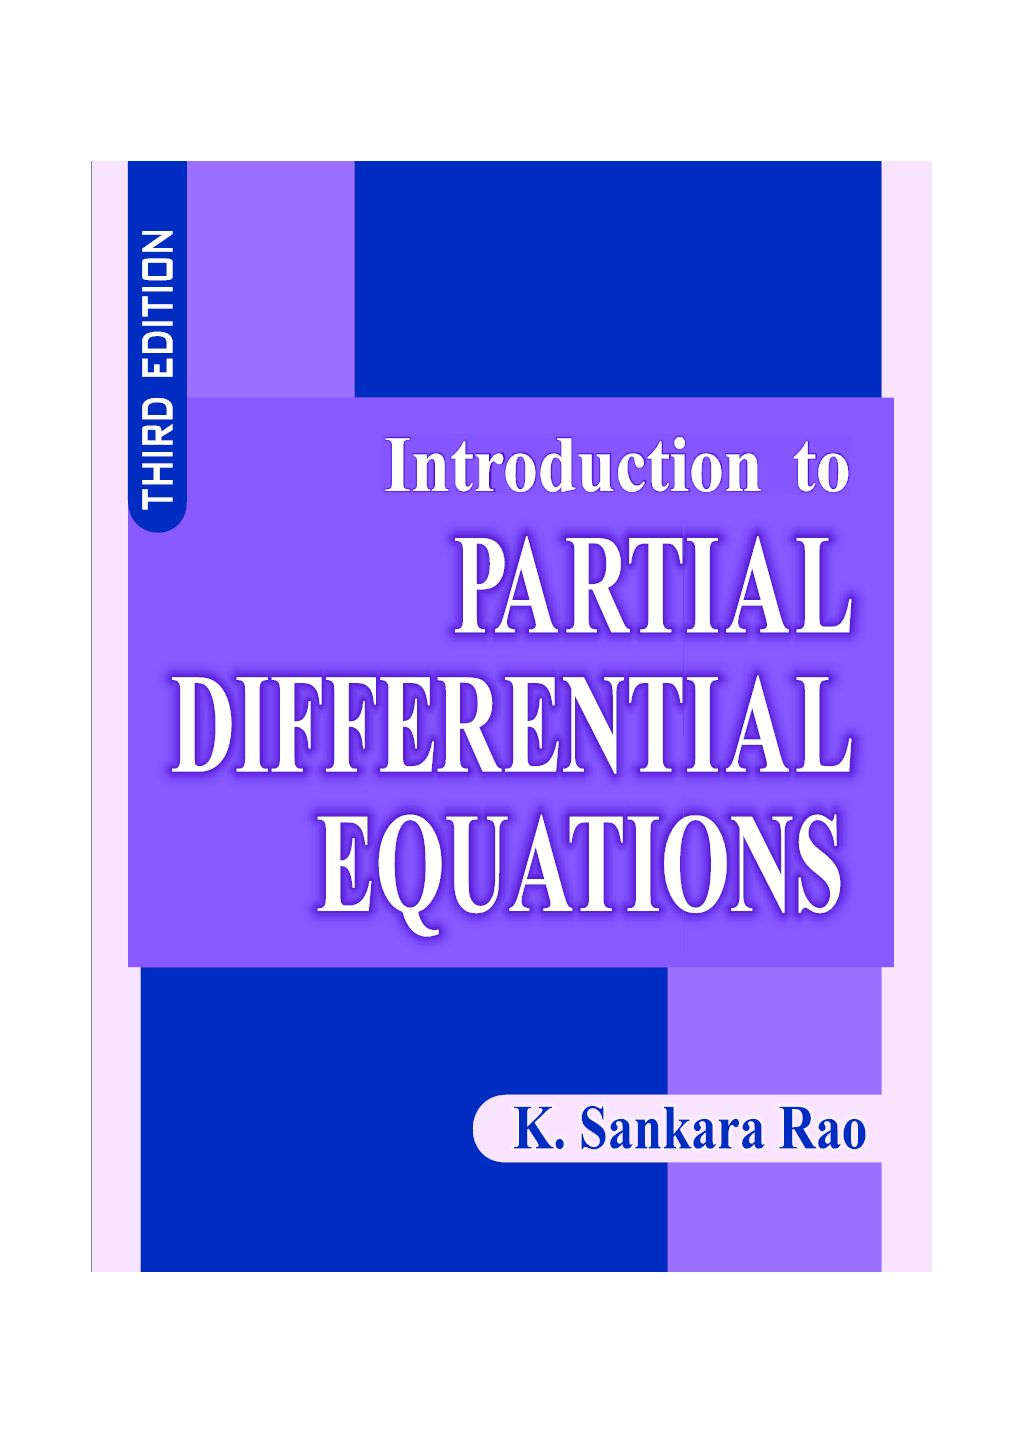 Download Introduction To Partial Differential Equations By